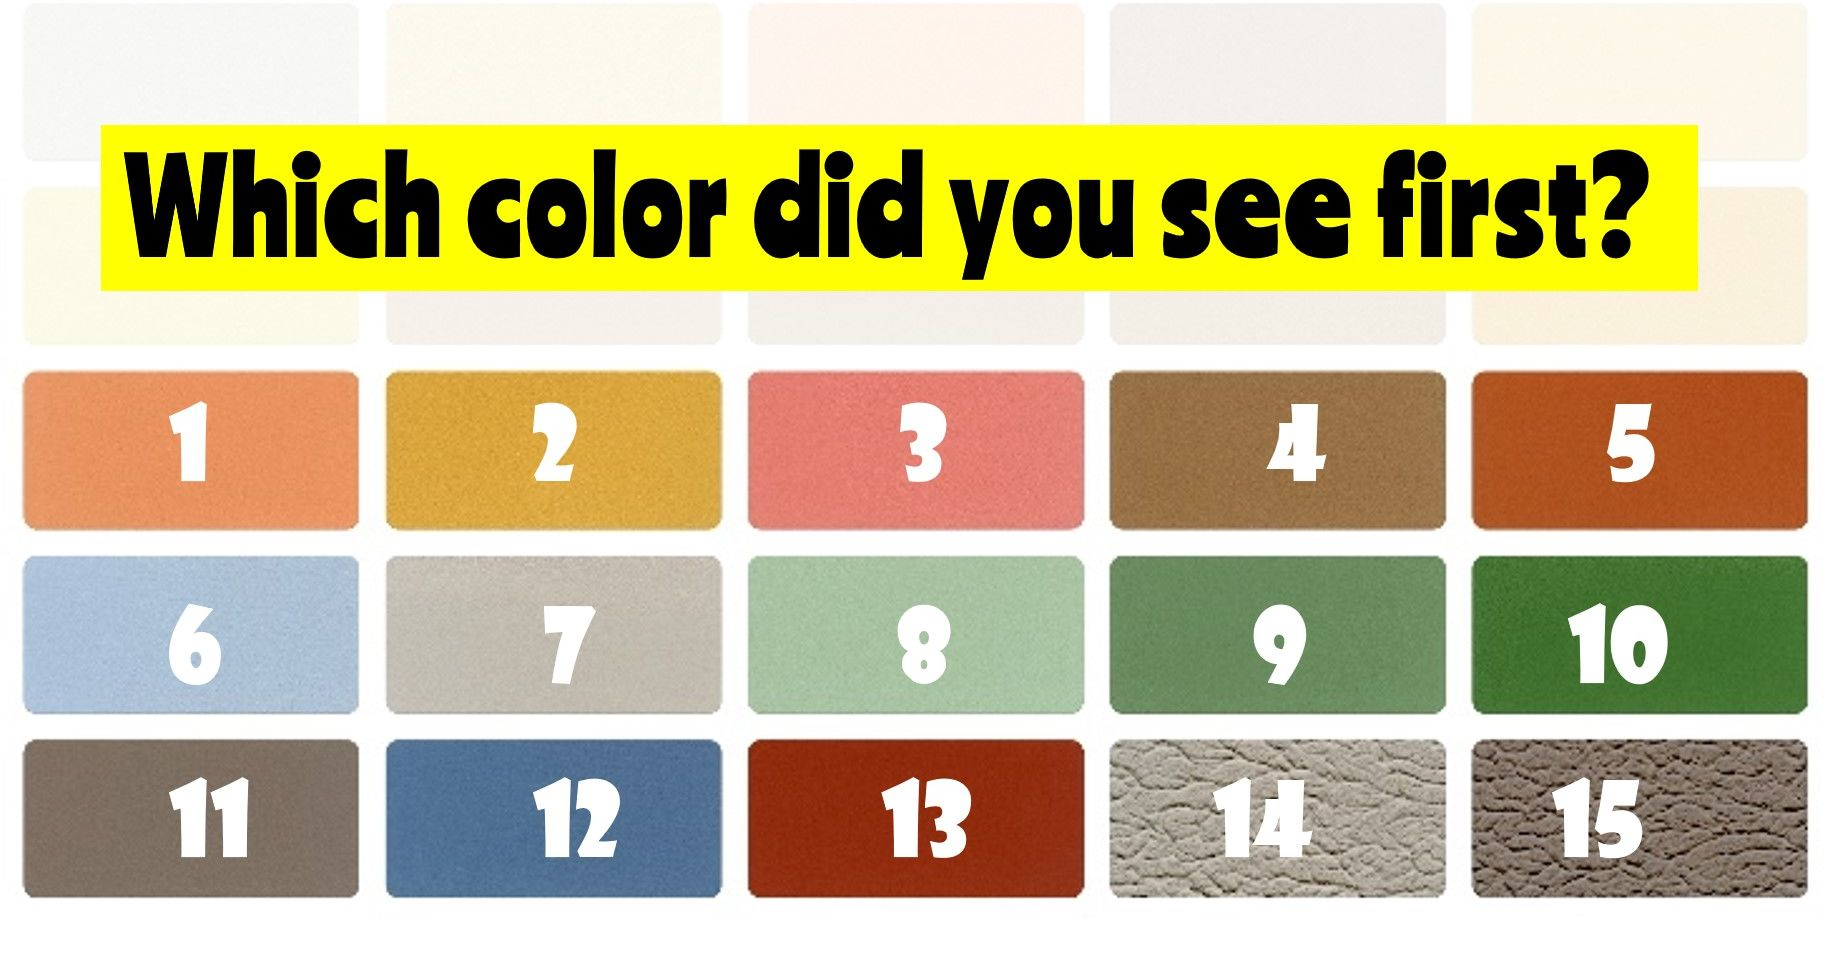 QUIZ: The Colors You See Can Determine Your Dominant Emotion